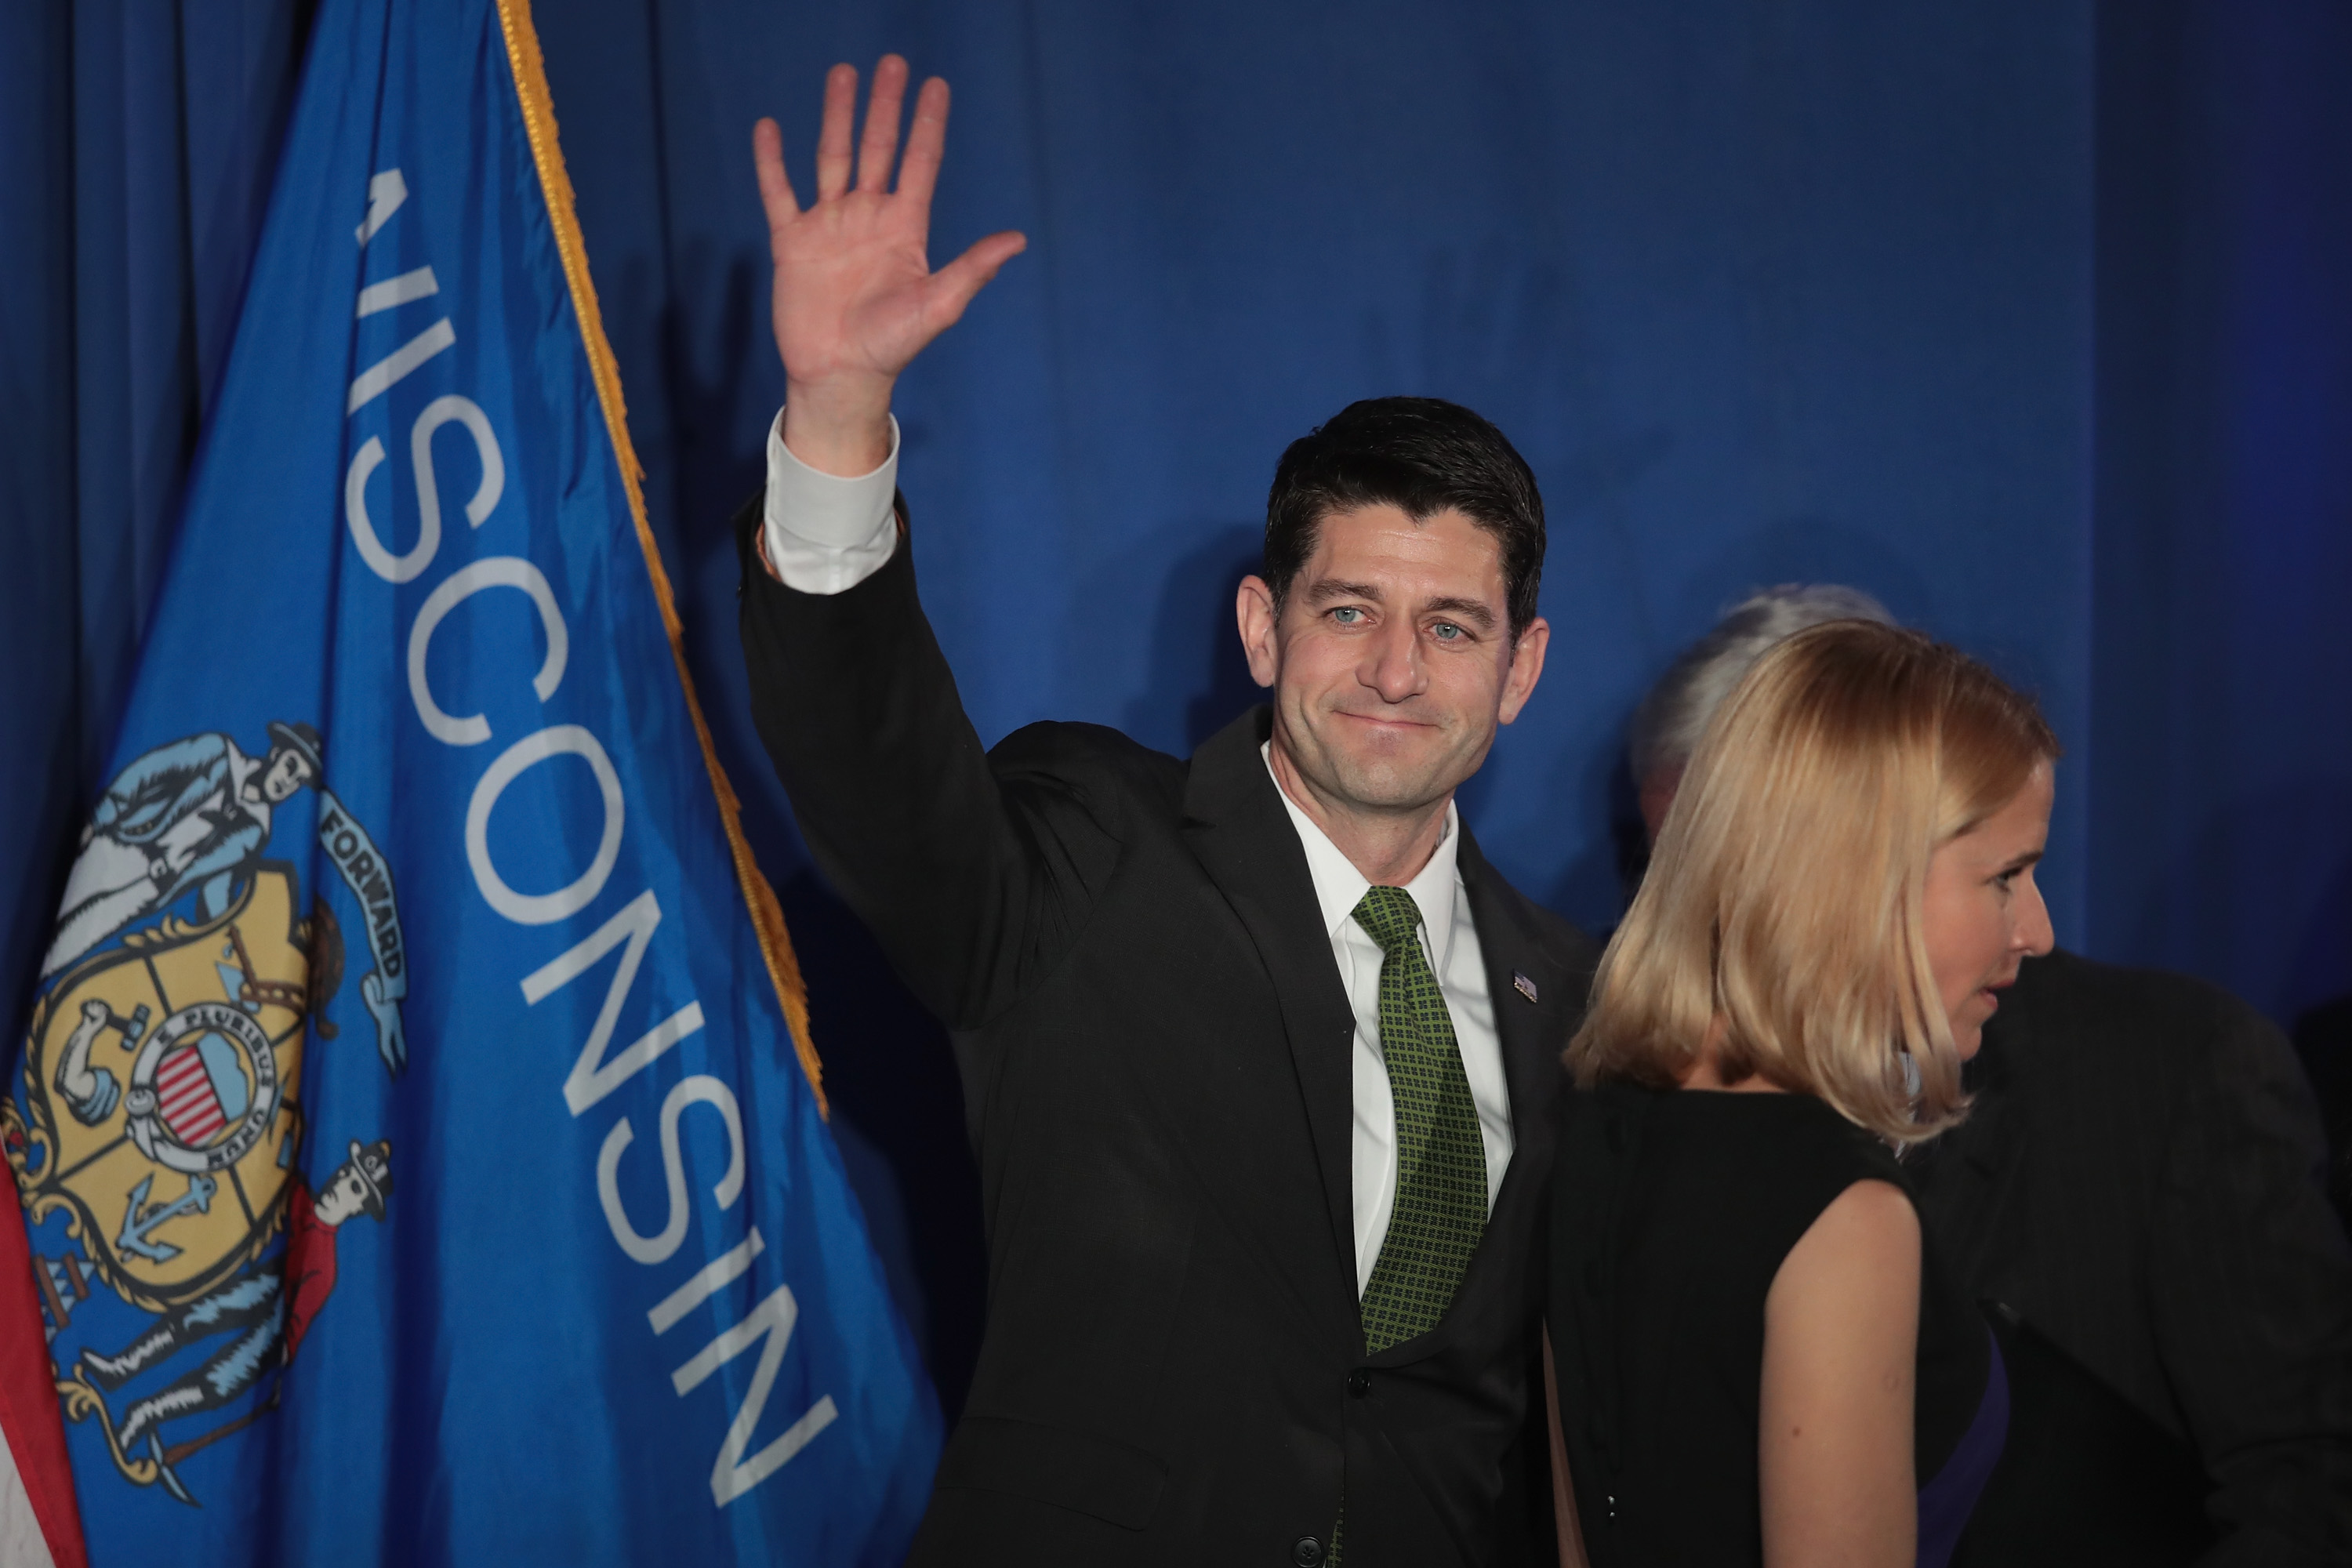 With his wife Janna by his side Speaker of the U.S. House of Representatives Paul Ryan (R-WI) greets supporters at an election-night rally on November 8, 2016 in Janesville, Wisconsin. Scott Olson—Getty Images